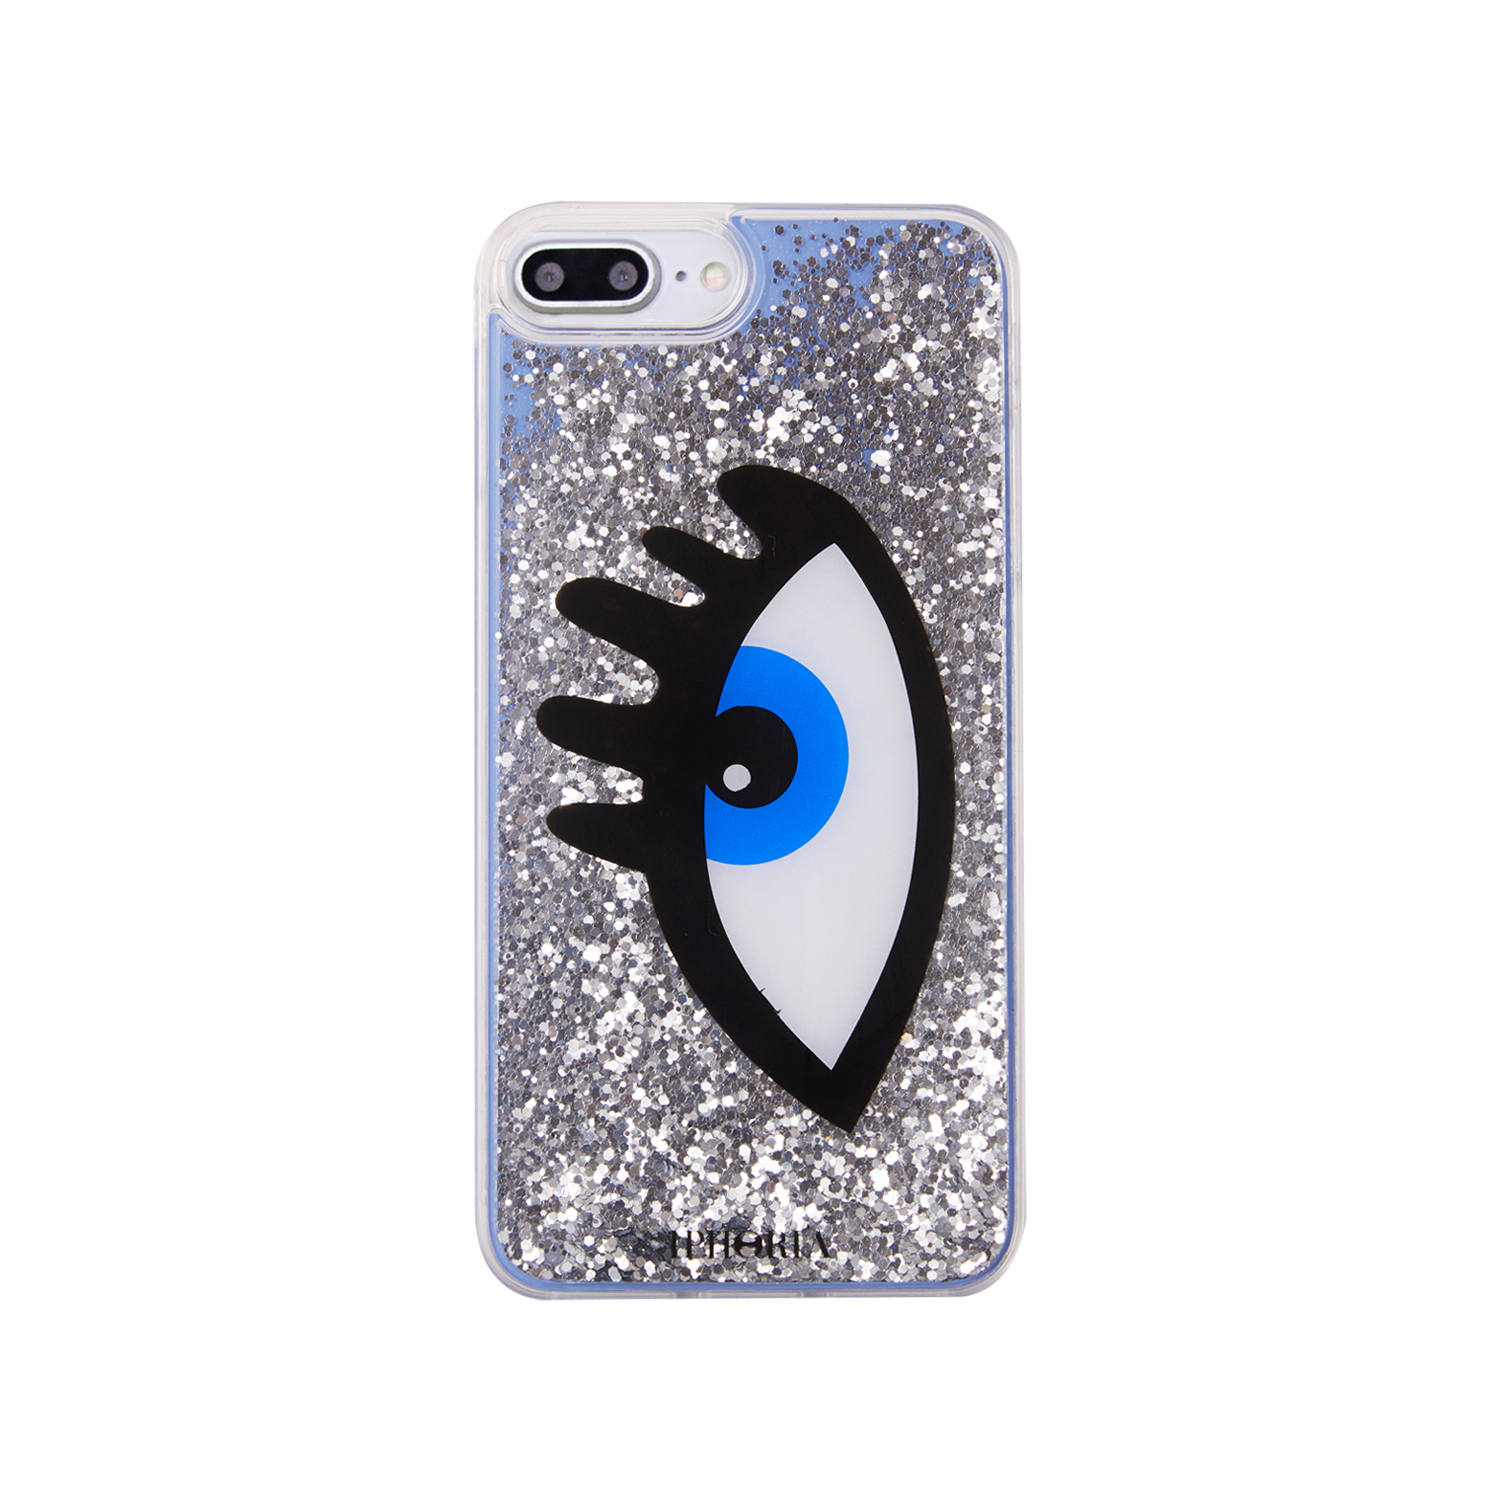 Liquid Case for Apple iPhone 7+/8+ - Blue Eye